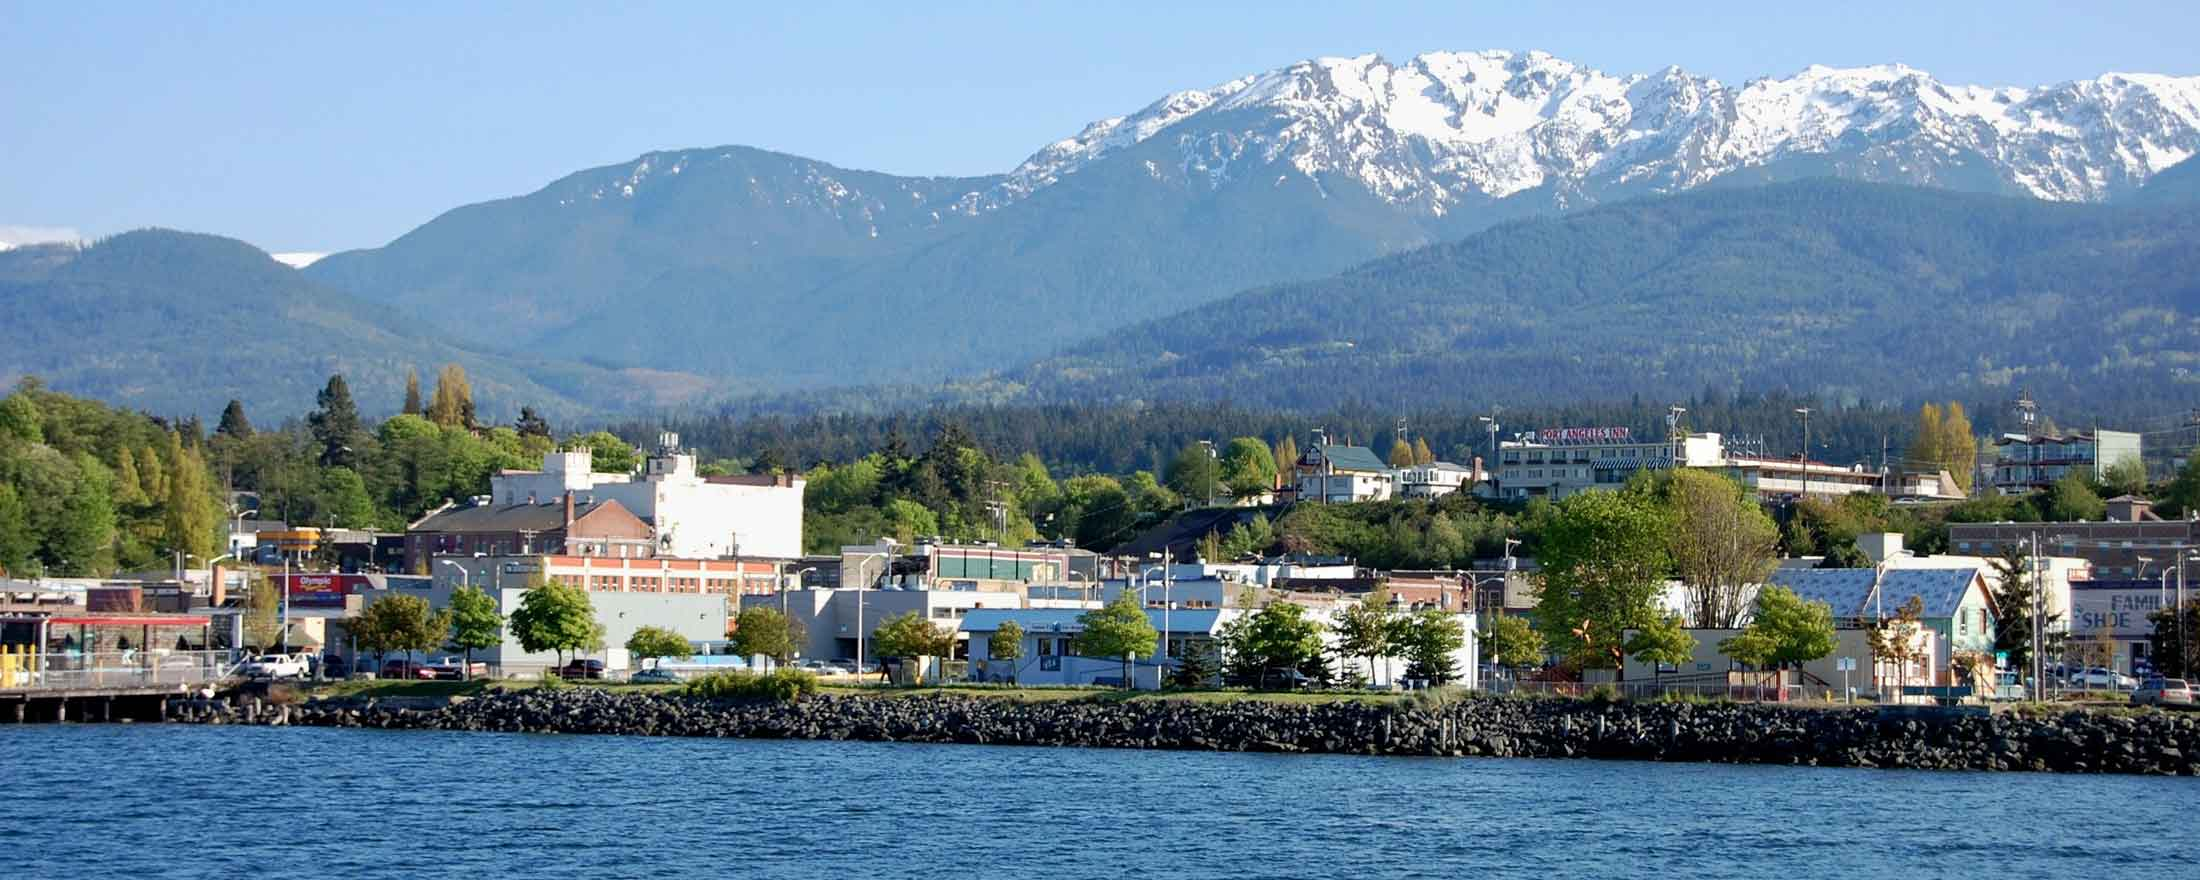 Olympics and Port Angeles